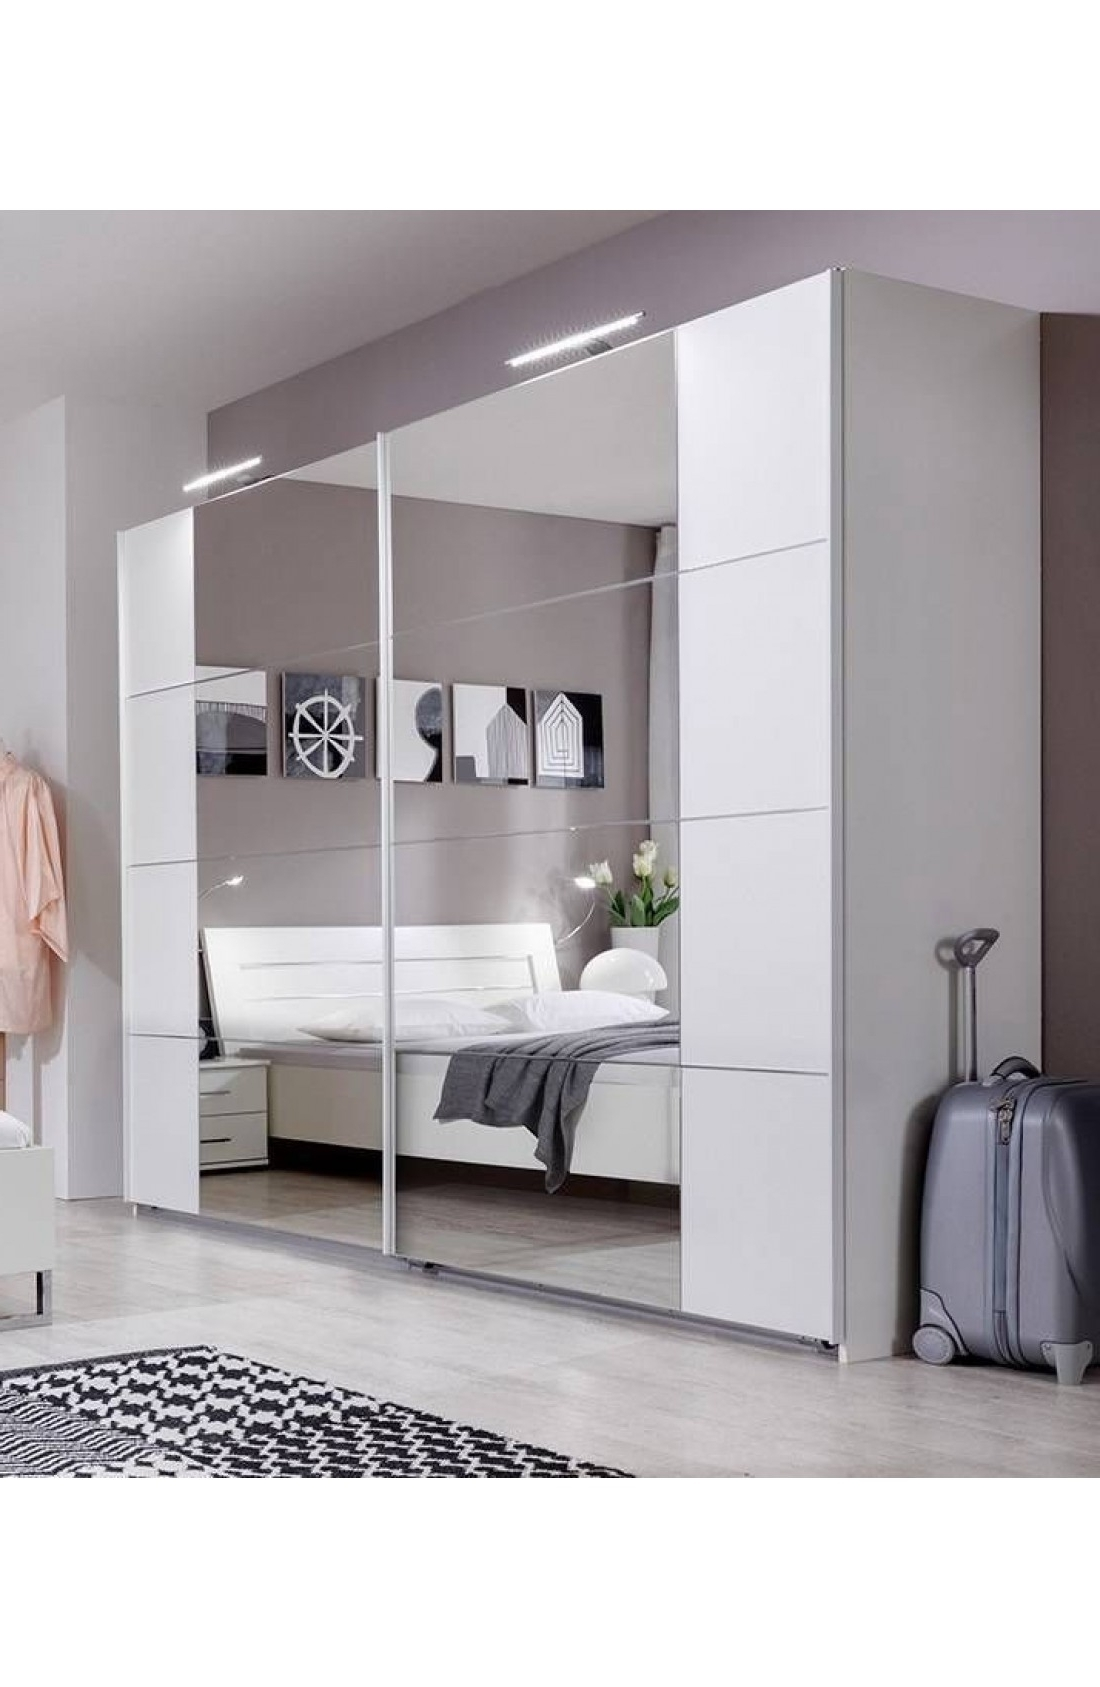 Slumberhaus 'davos' German Made Modern White & Mirror Sliding Door In Most Recently Released White Mirrored Wardrobes (View 6 of 15)